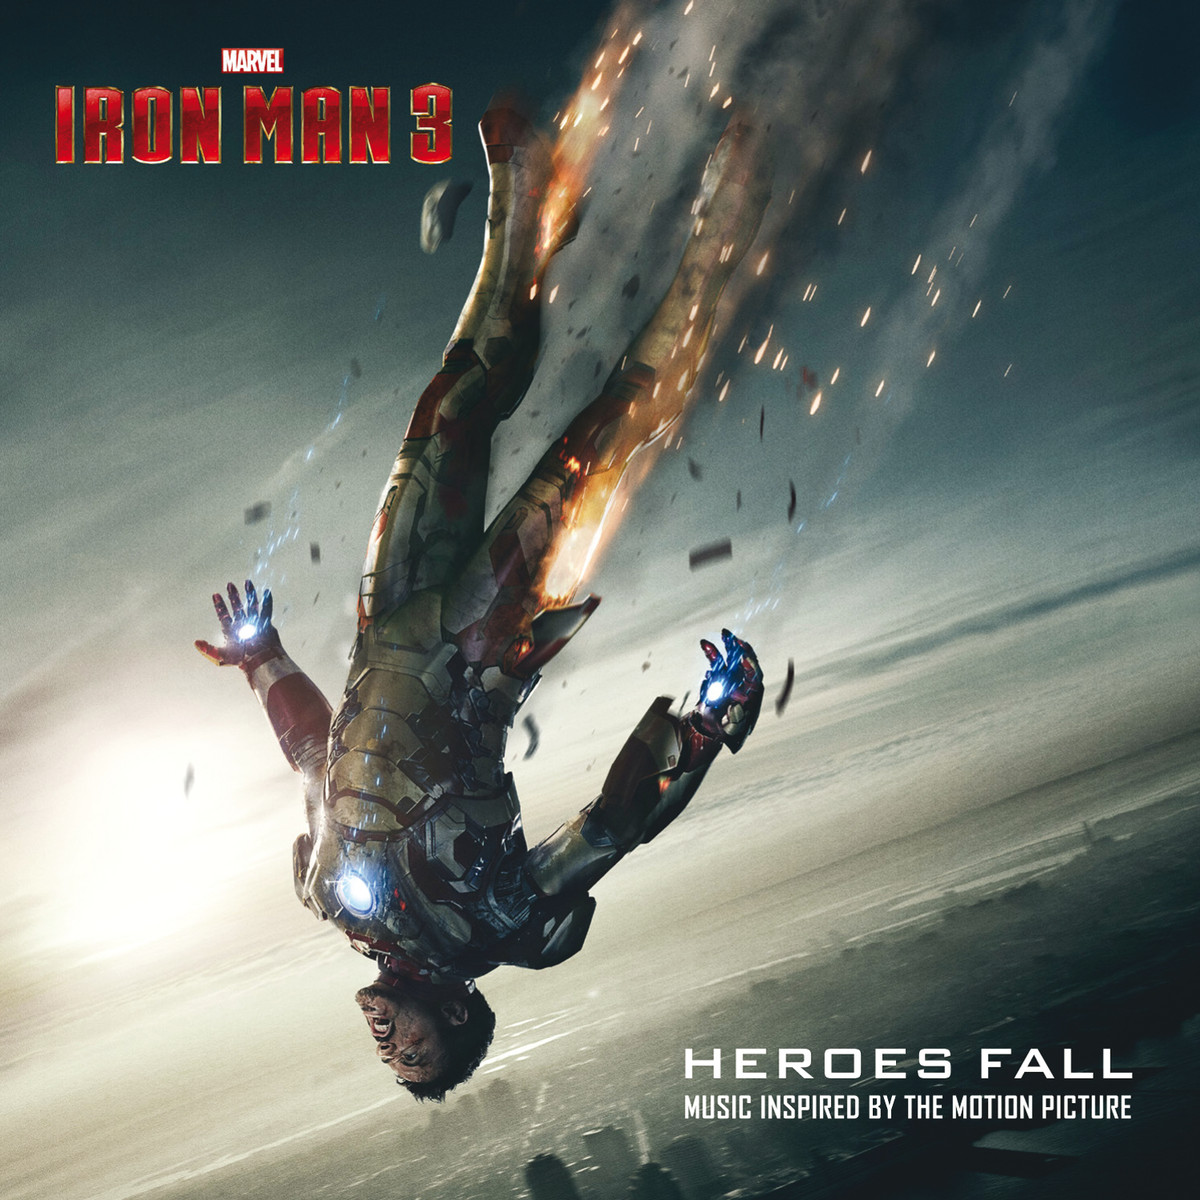 Iron Man 3: Heroes Fall – Music Inspired by the Motion Picture | Marvel Cinematic Universe Wiki | FANDOM powered by Wikia